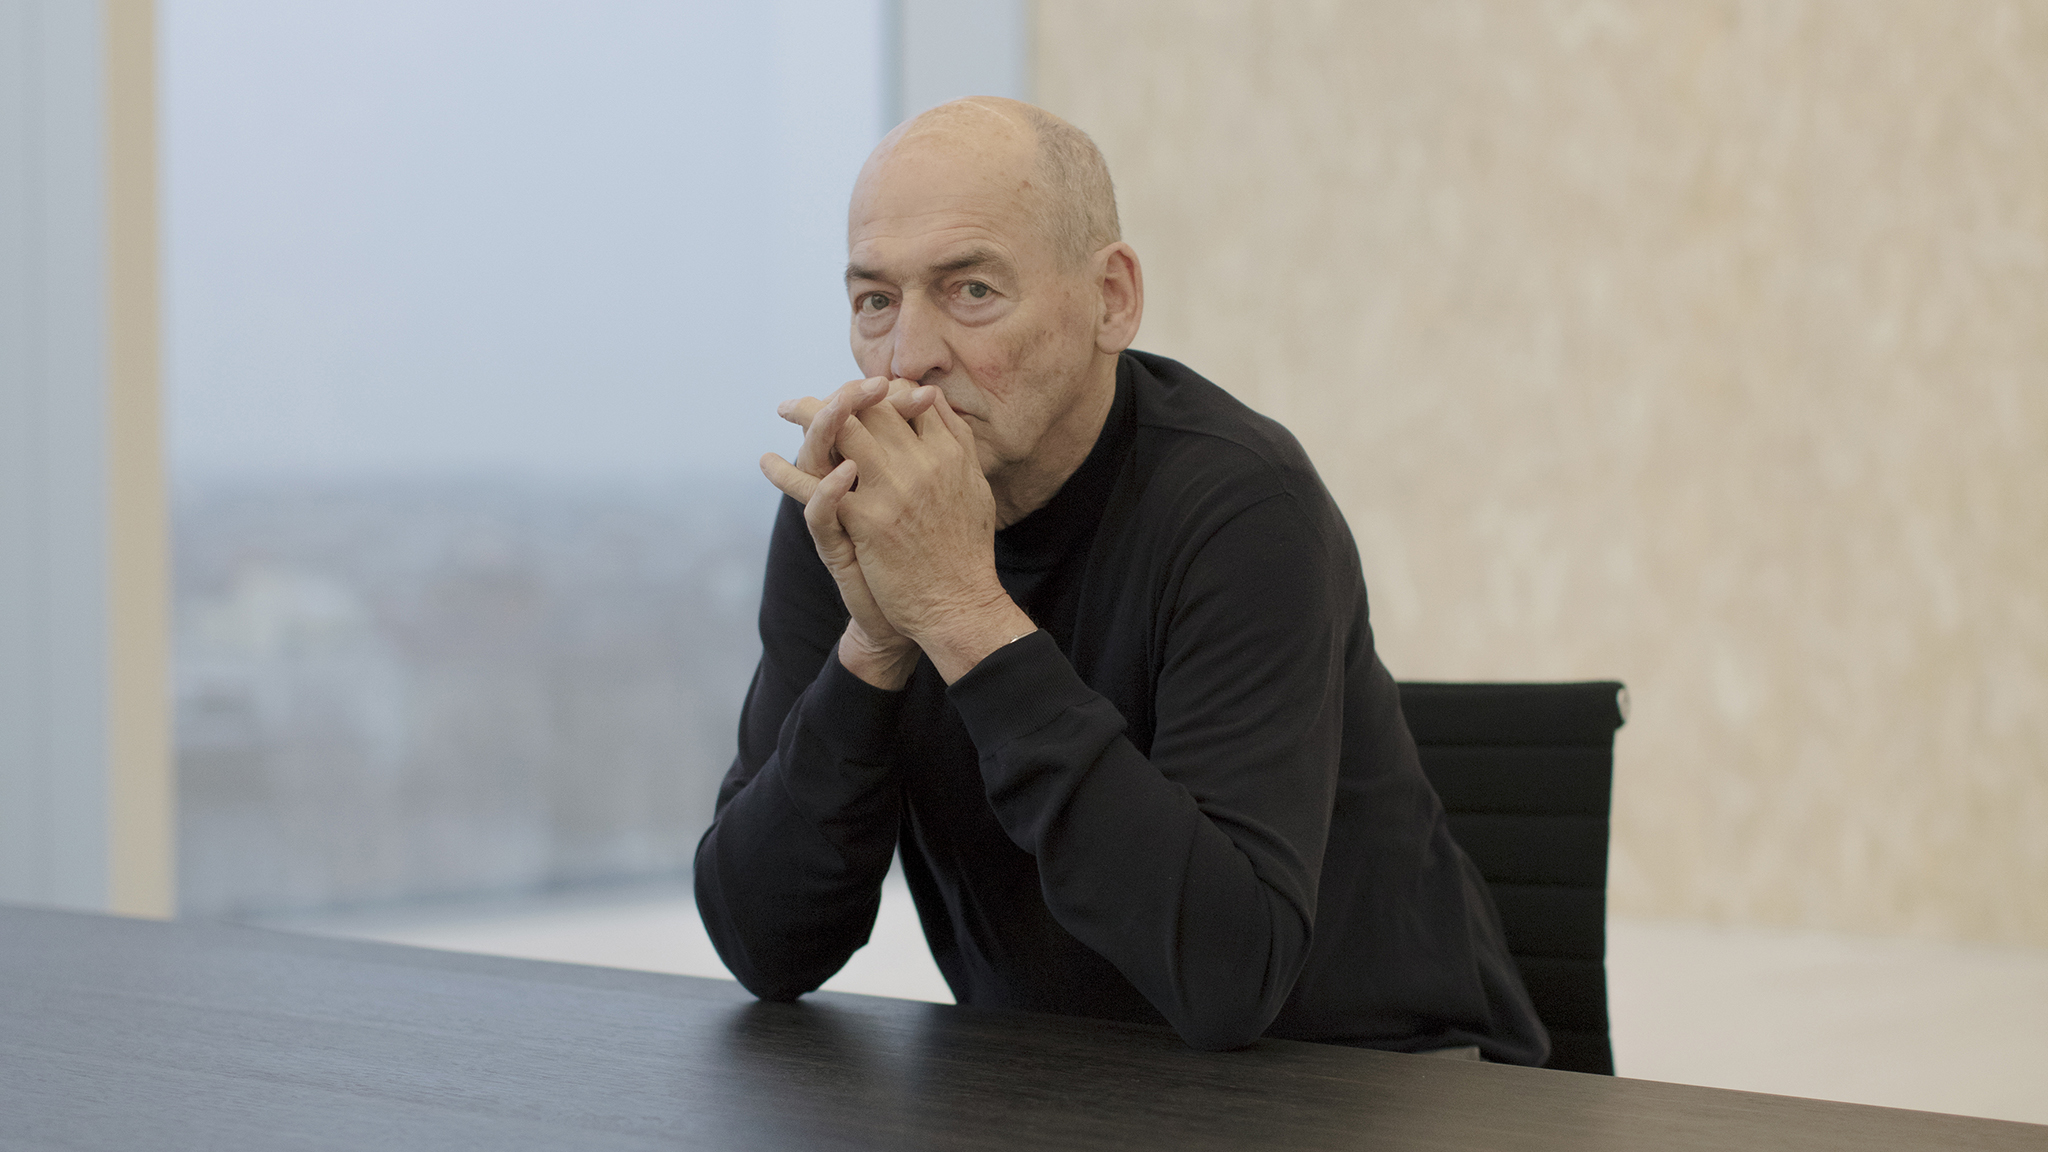 Rem Koolhaas The Word Starchitect Makes You Sound Like An Ahole Financial Times